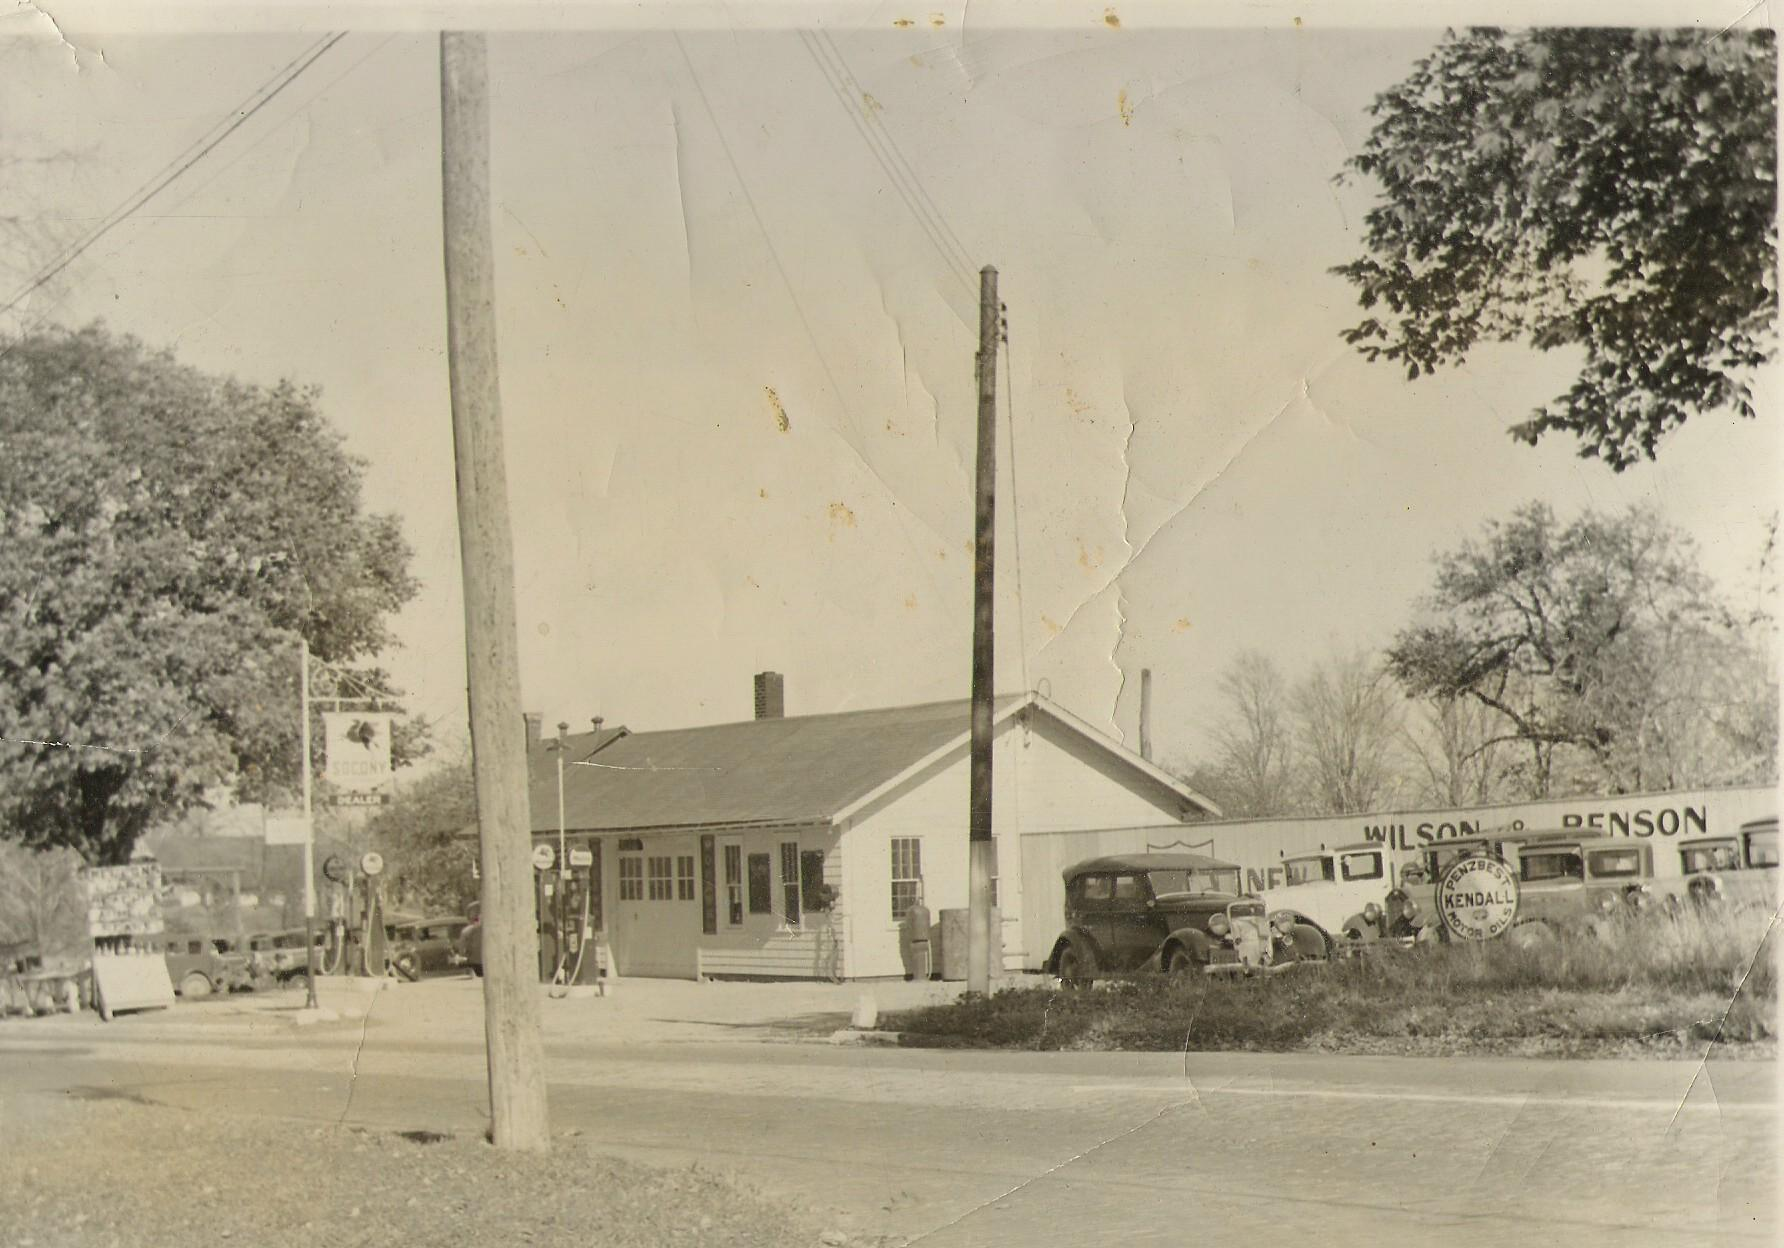 Wilson Auto store from 1937, when it was called Wilson & Benson.